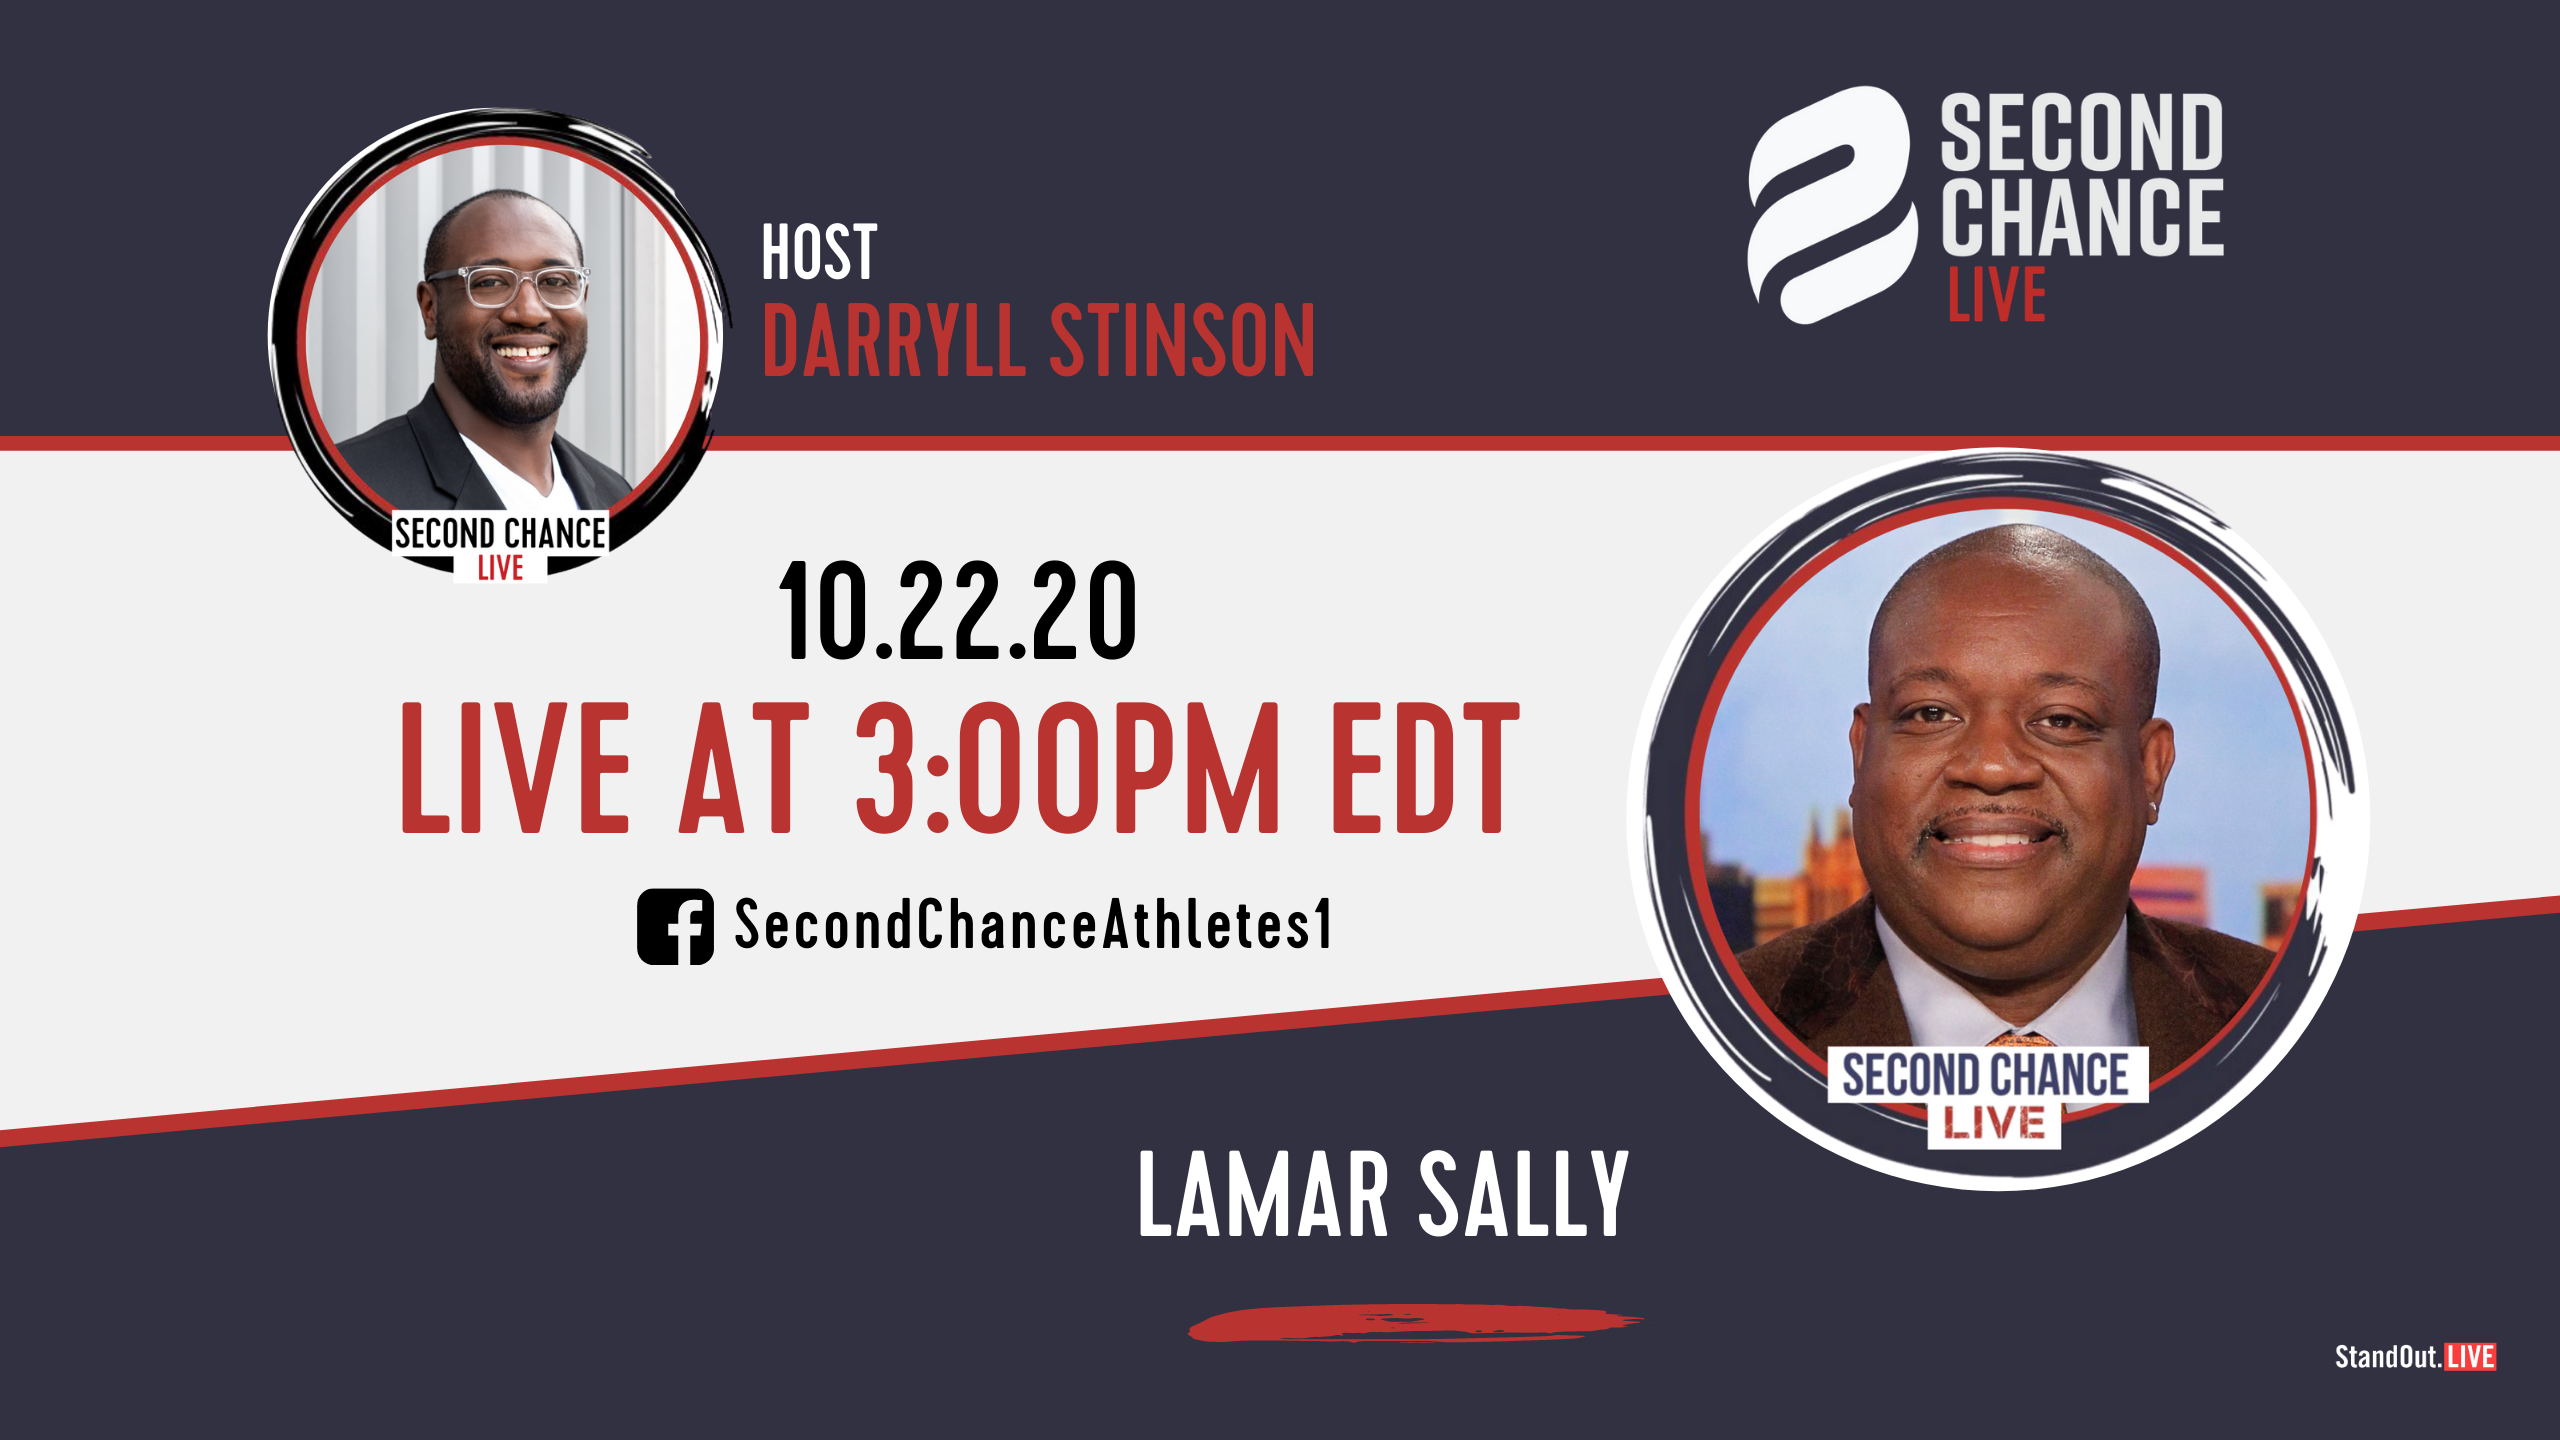 Second Chance LIVE -with Lamar Sally